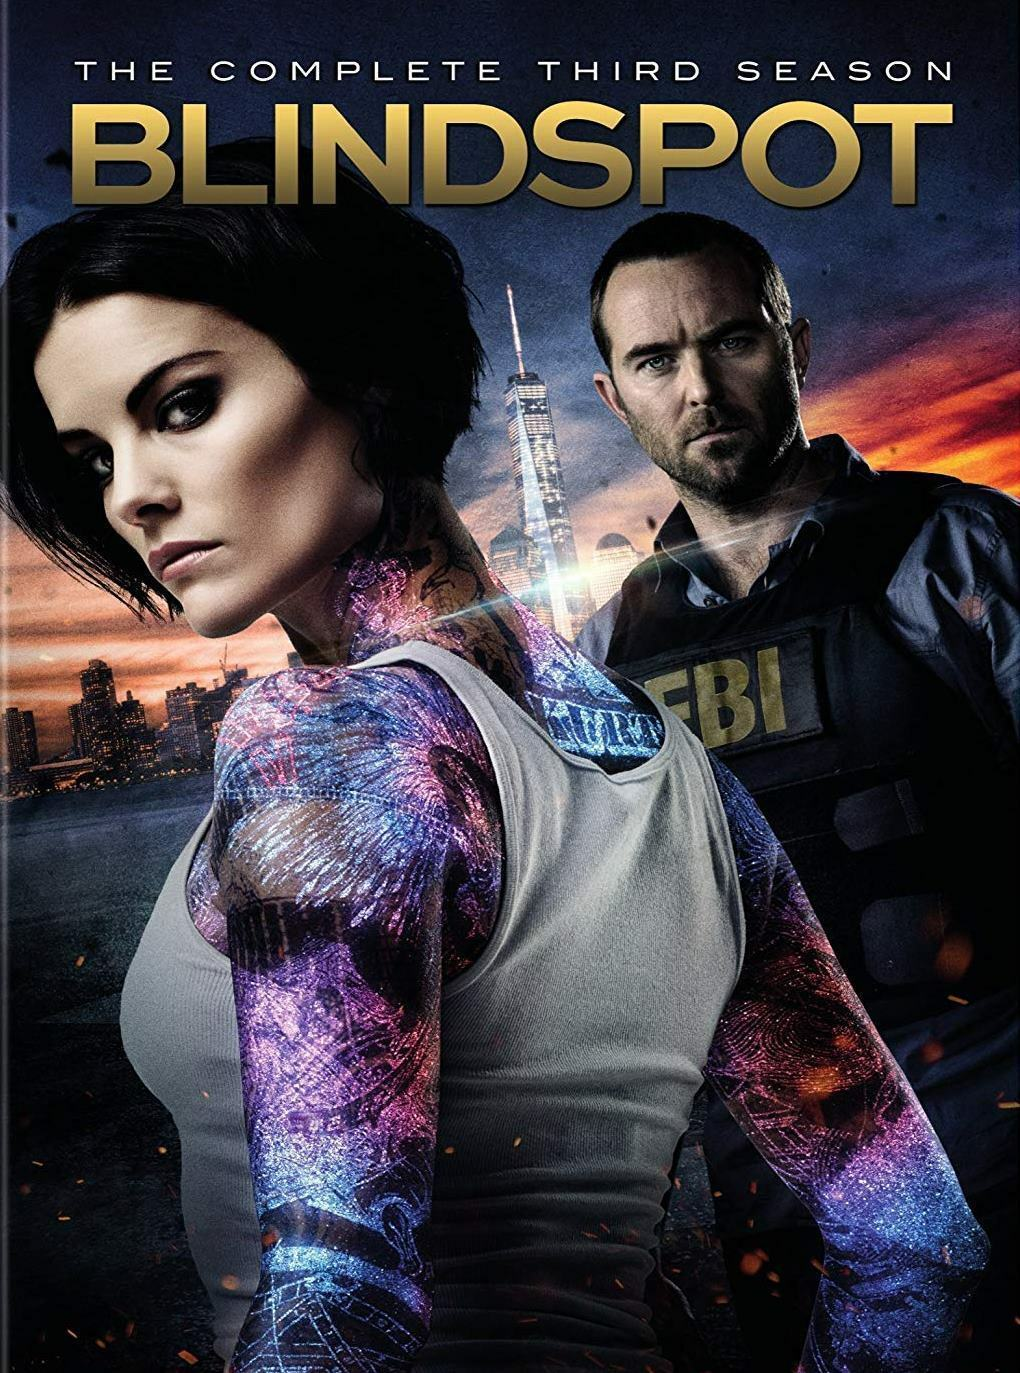 Primary image for Blindspot Season 3 (DVD 2018, 4-Disc Set) BRAND NEW/FACTORY SEALED